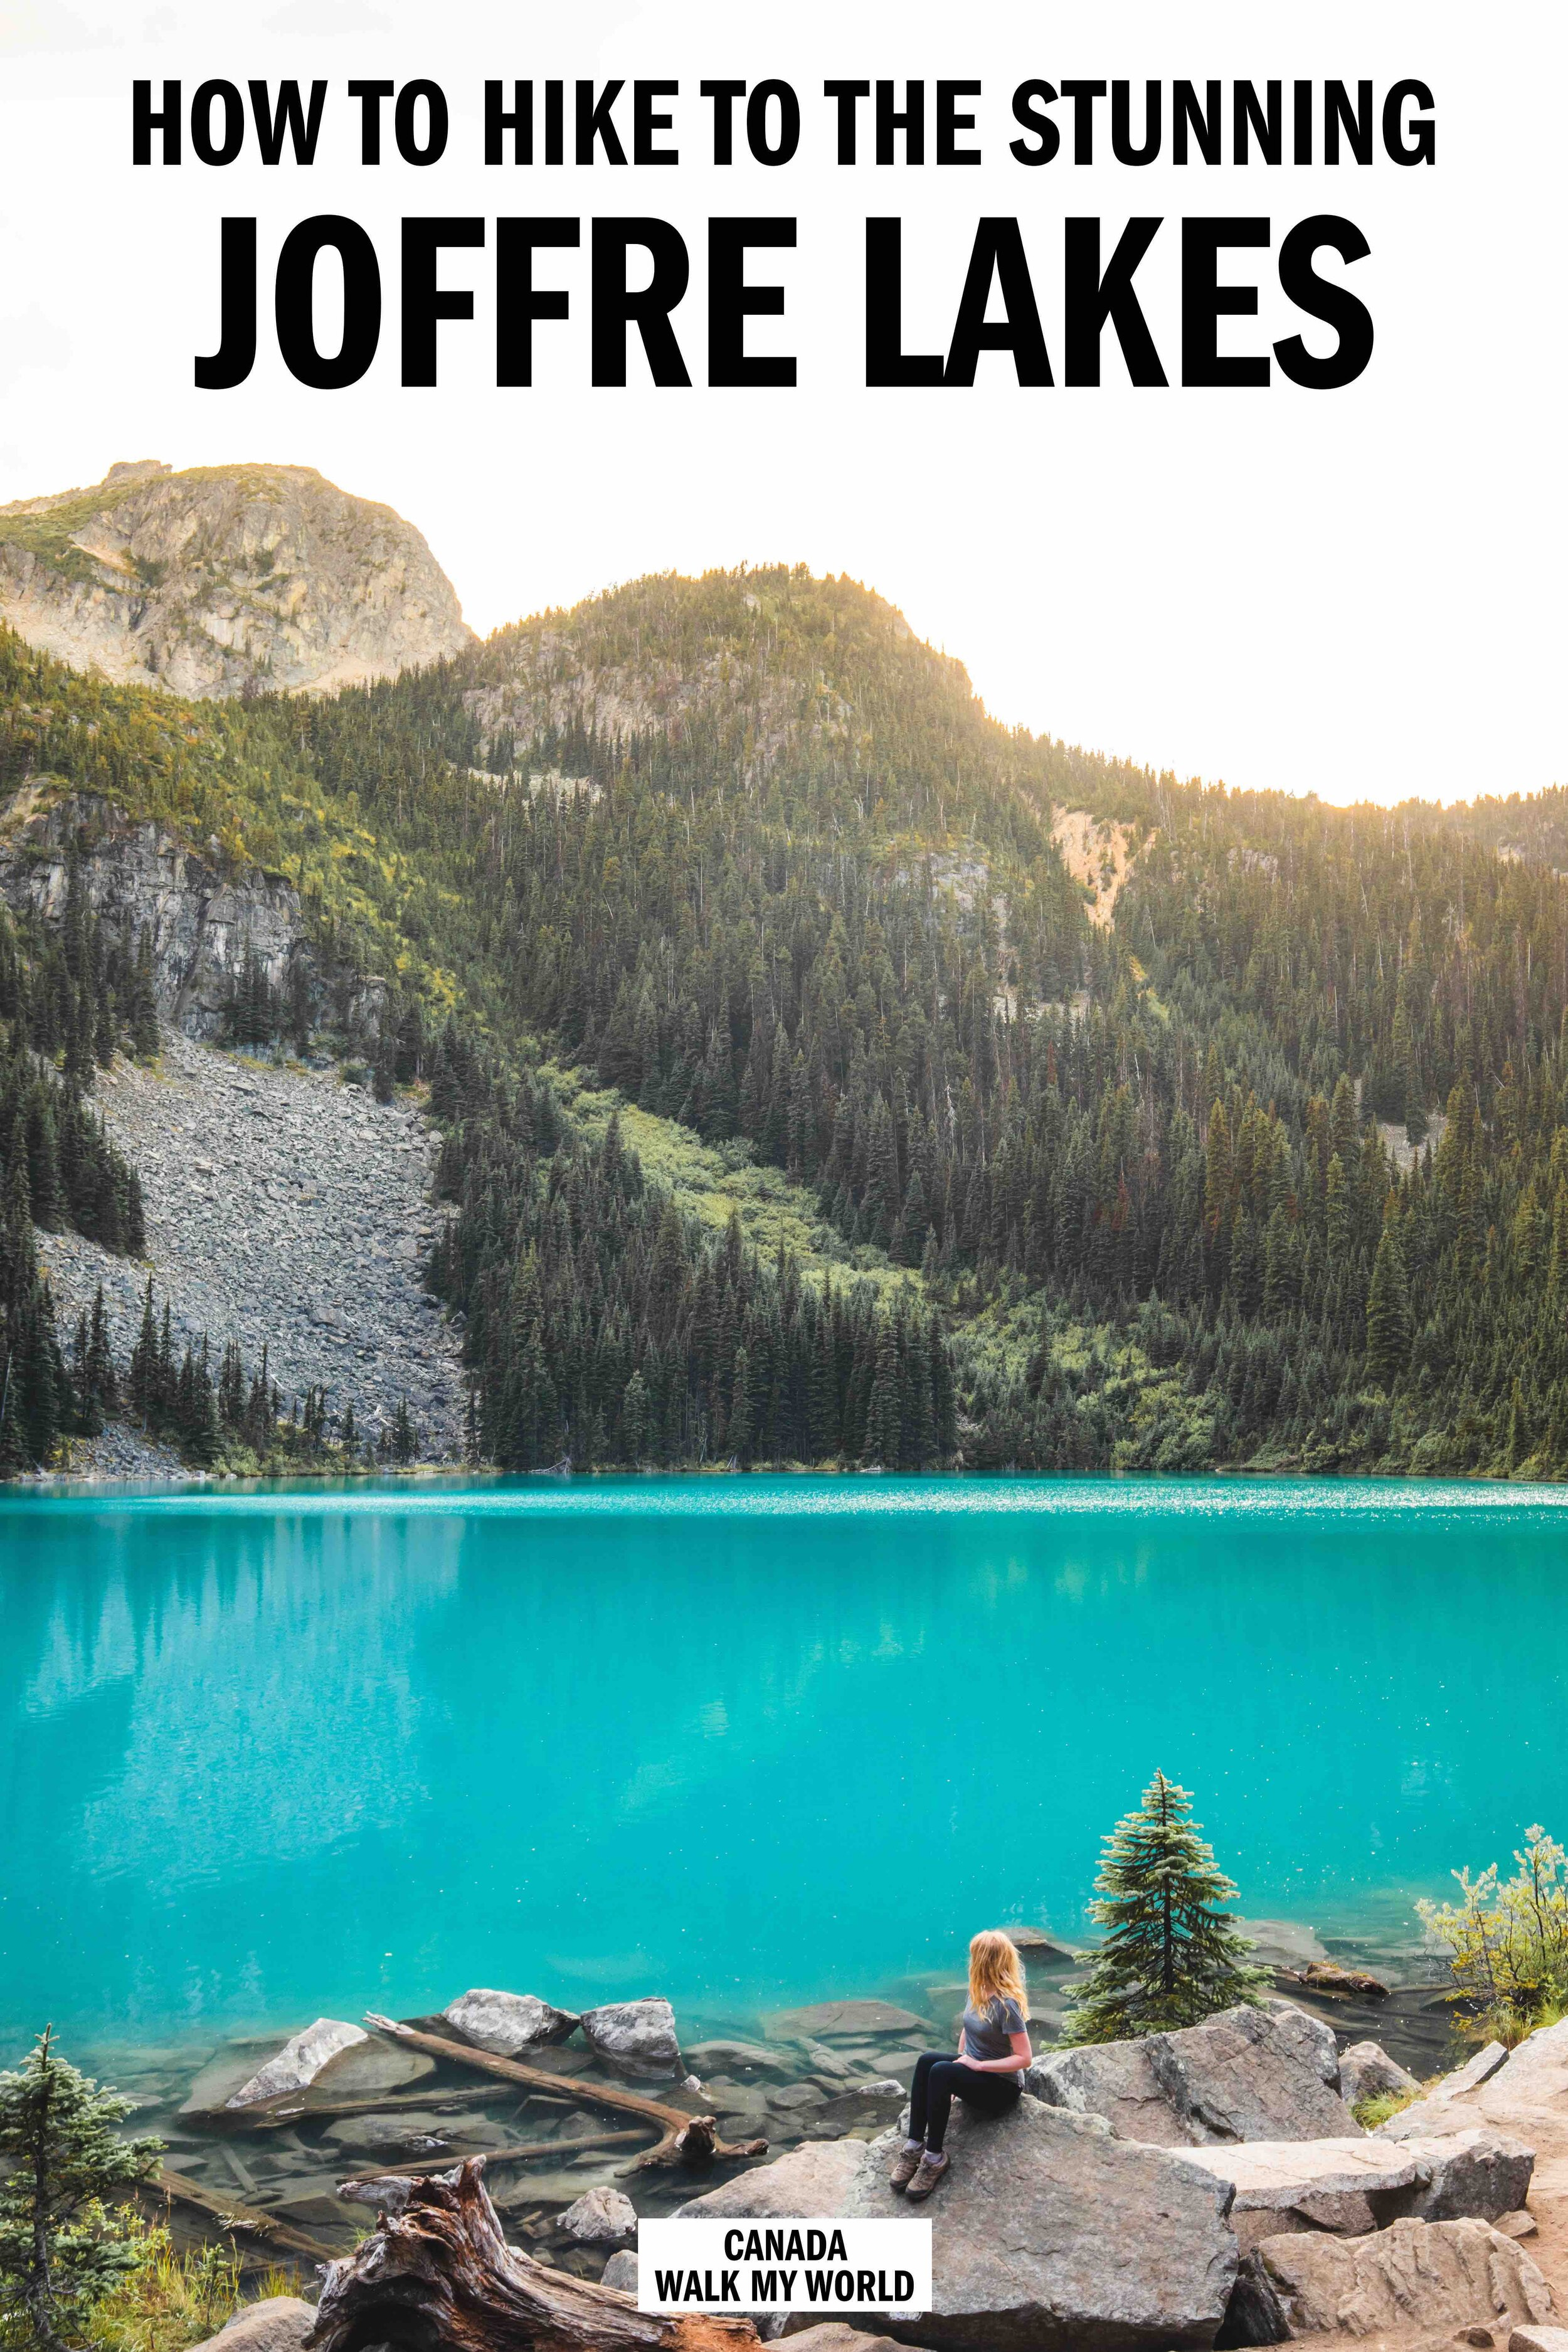 Everything you need to know about the Joffre Lakes hike - a trail to the most Instagrammable lakes near Vancouver. We'll tell you about the famous photography spot and about the quiet lake further on that no one visits!  #JoffreLakes #Canada #BritishColumbia